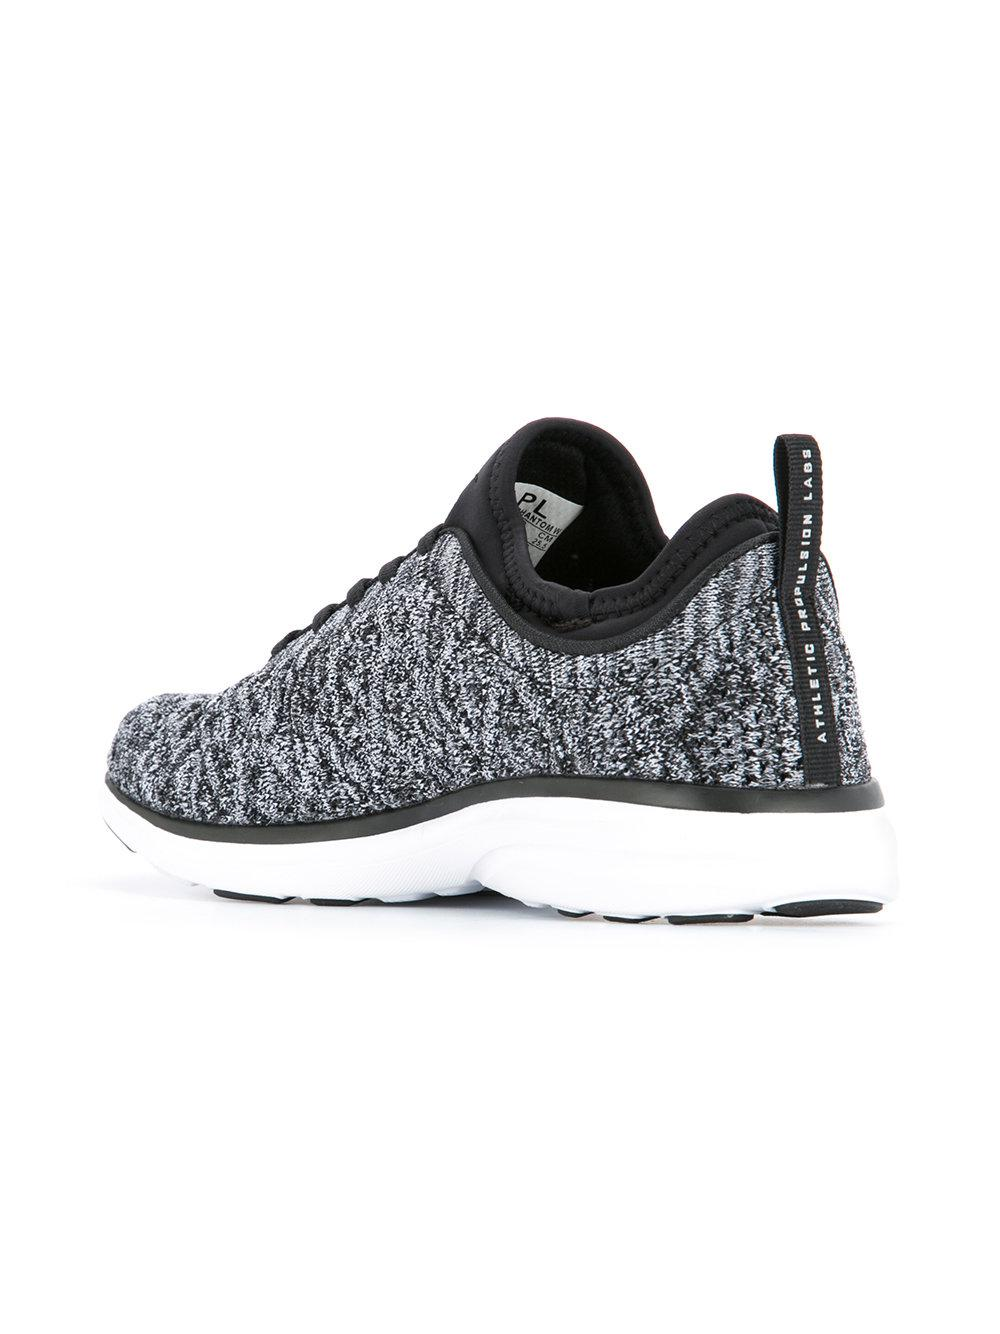 APL Athletic Propulsion Labs Propelium fly knit sneakers LvrCiow